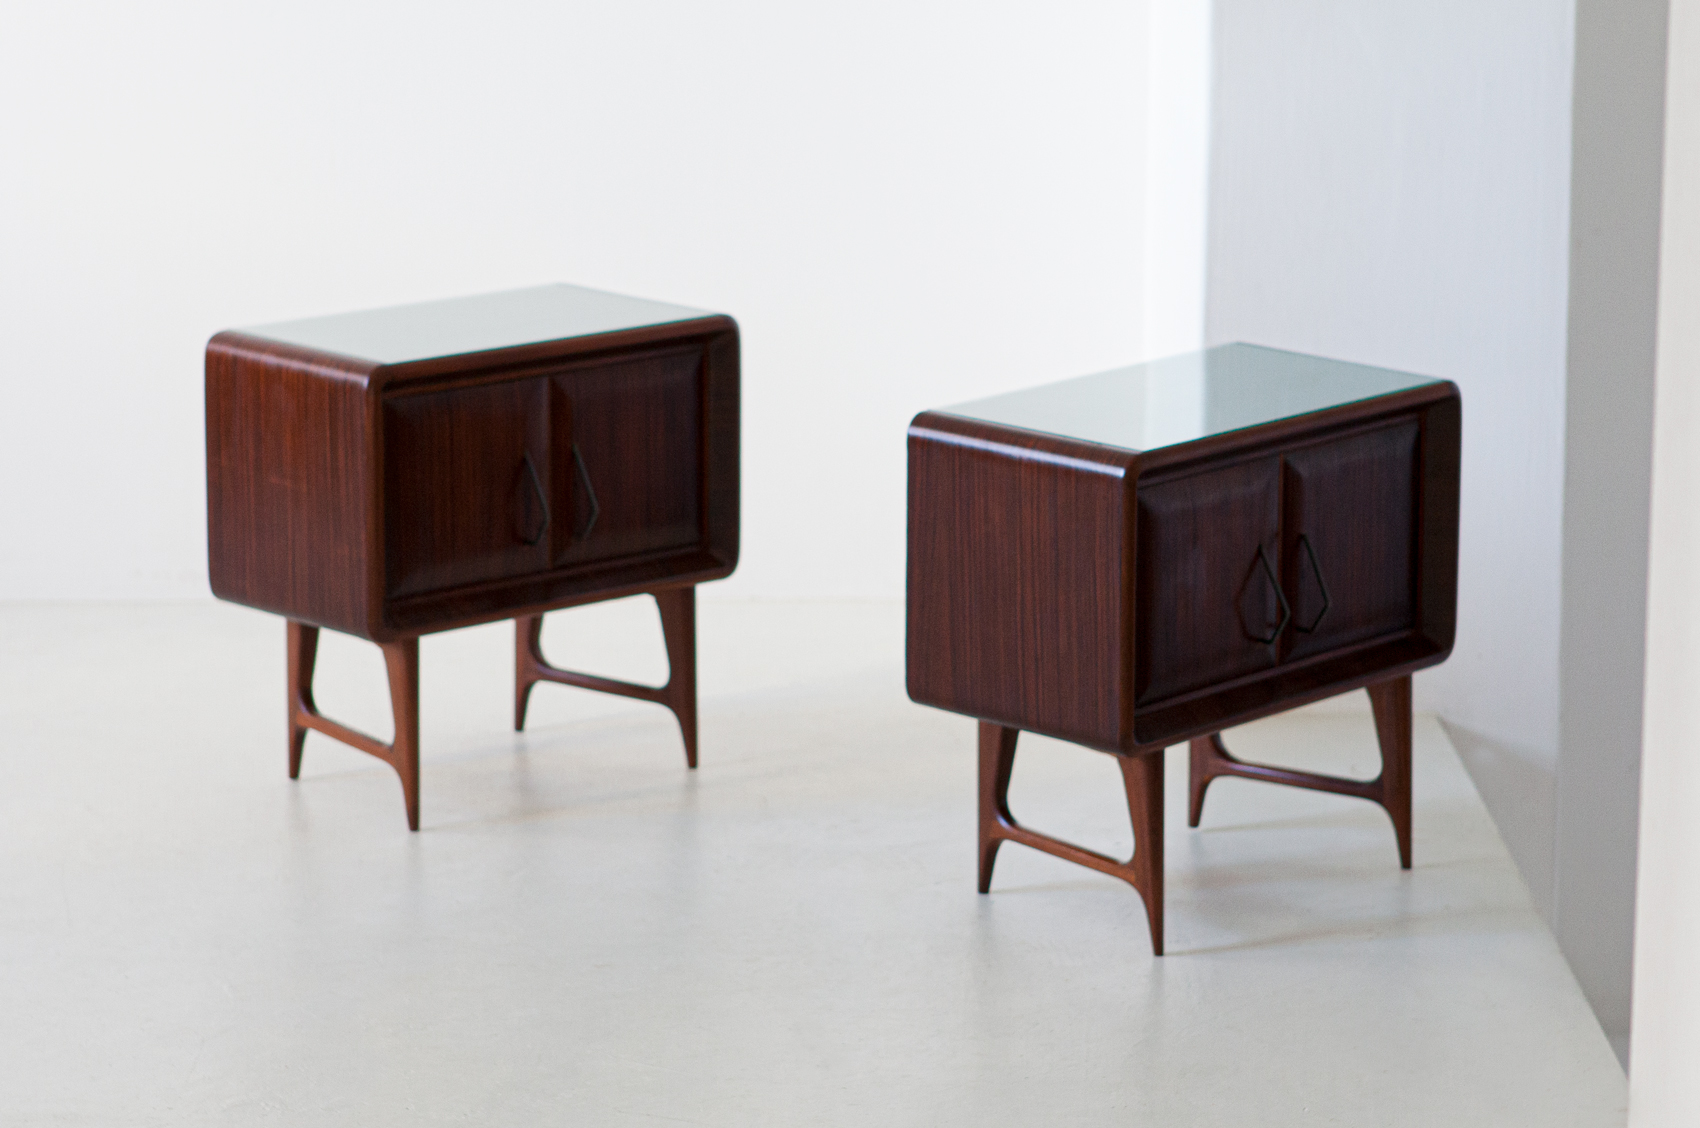 1950s-italian-rosewood-bedside-tables-with-green-glass-top-7-bt83